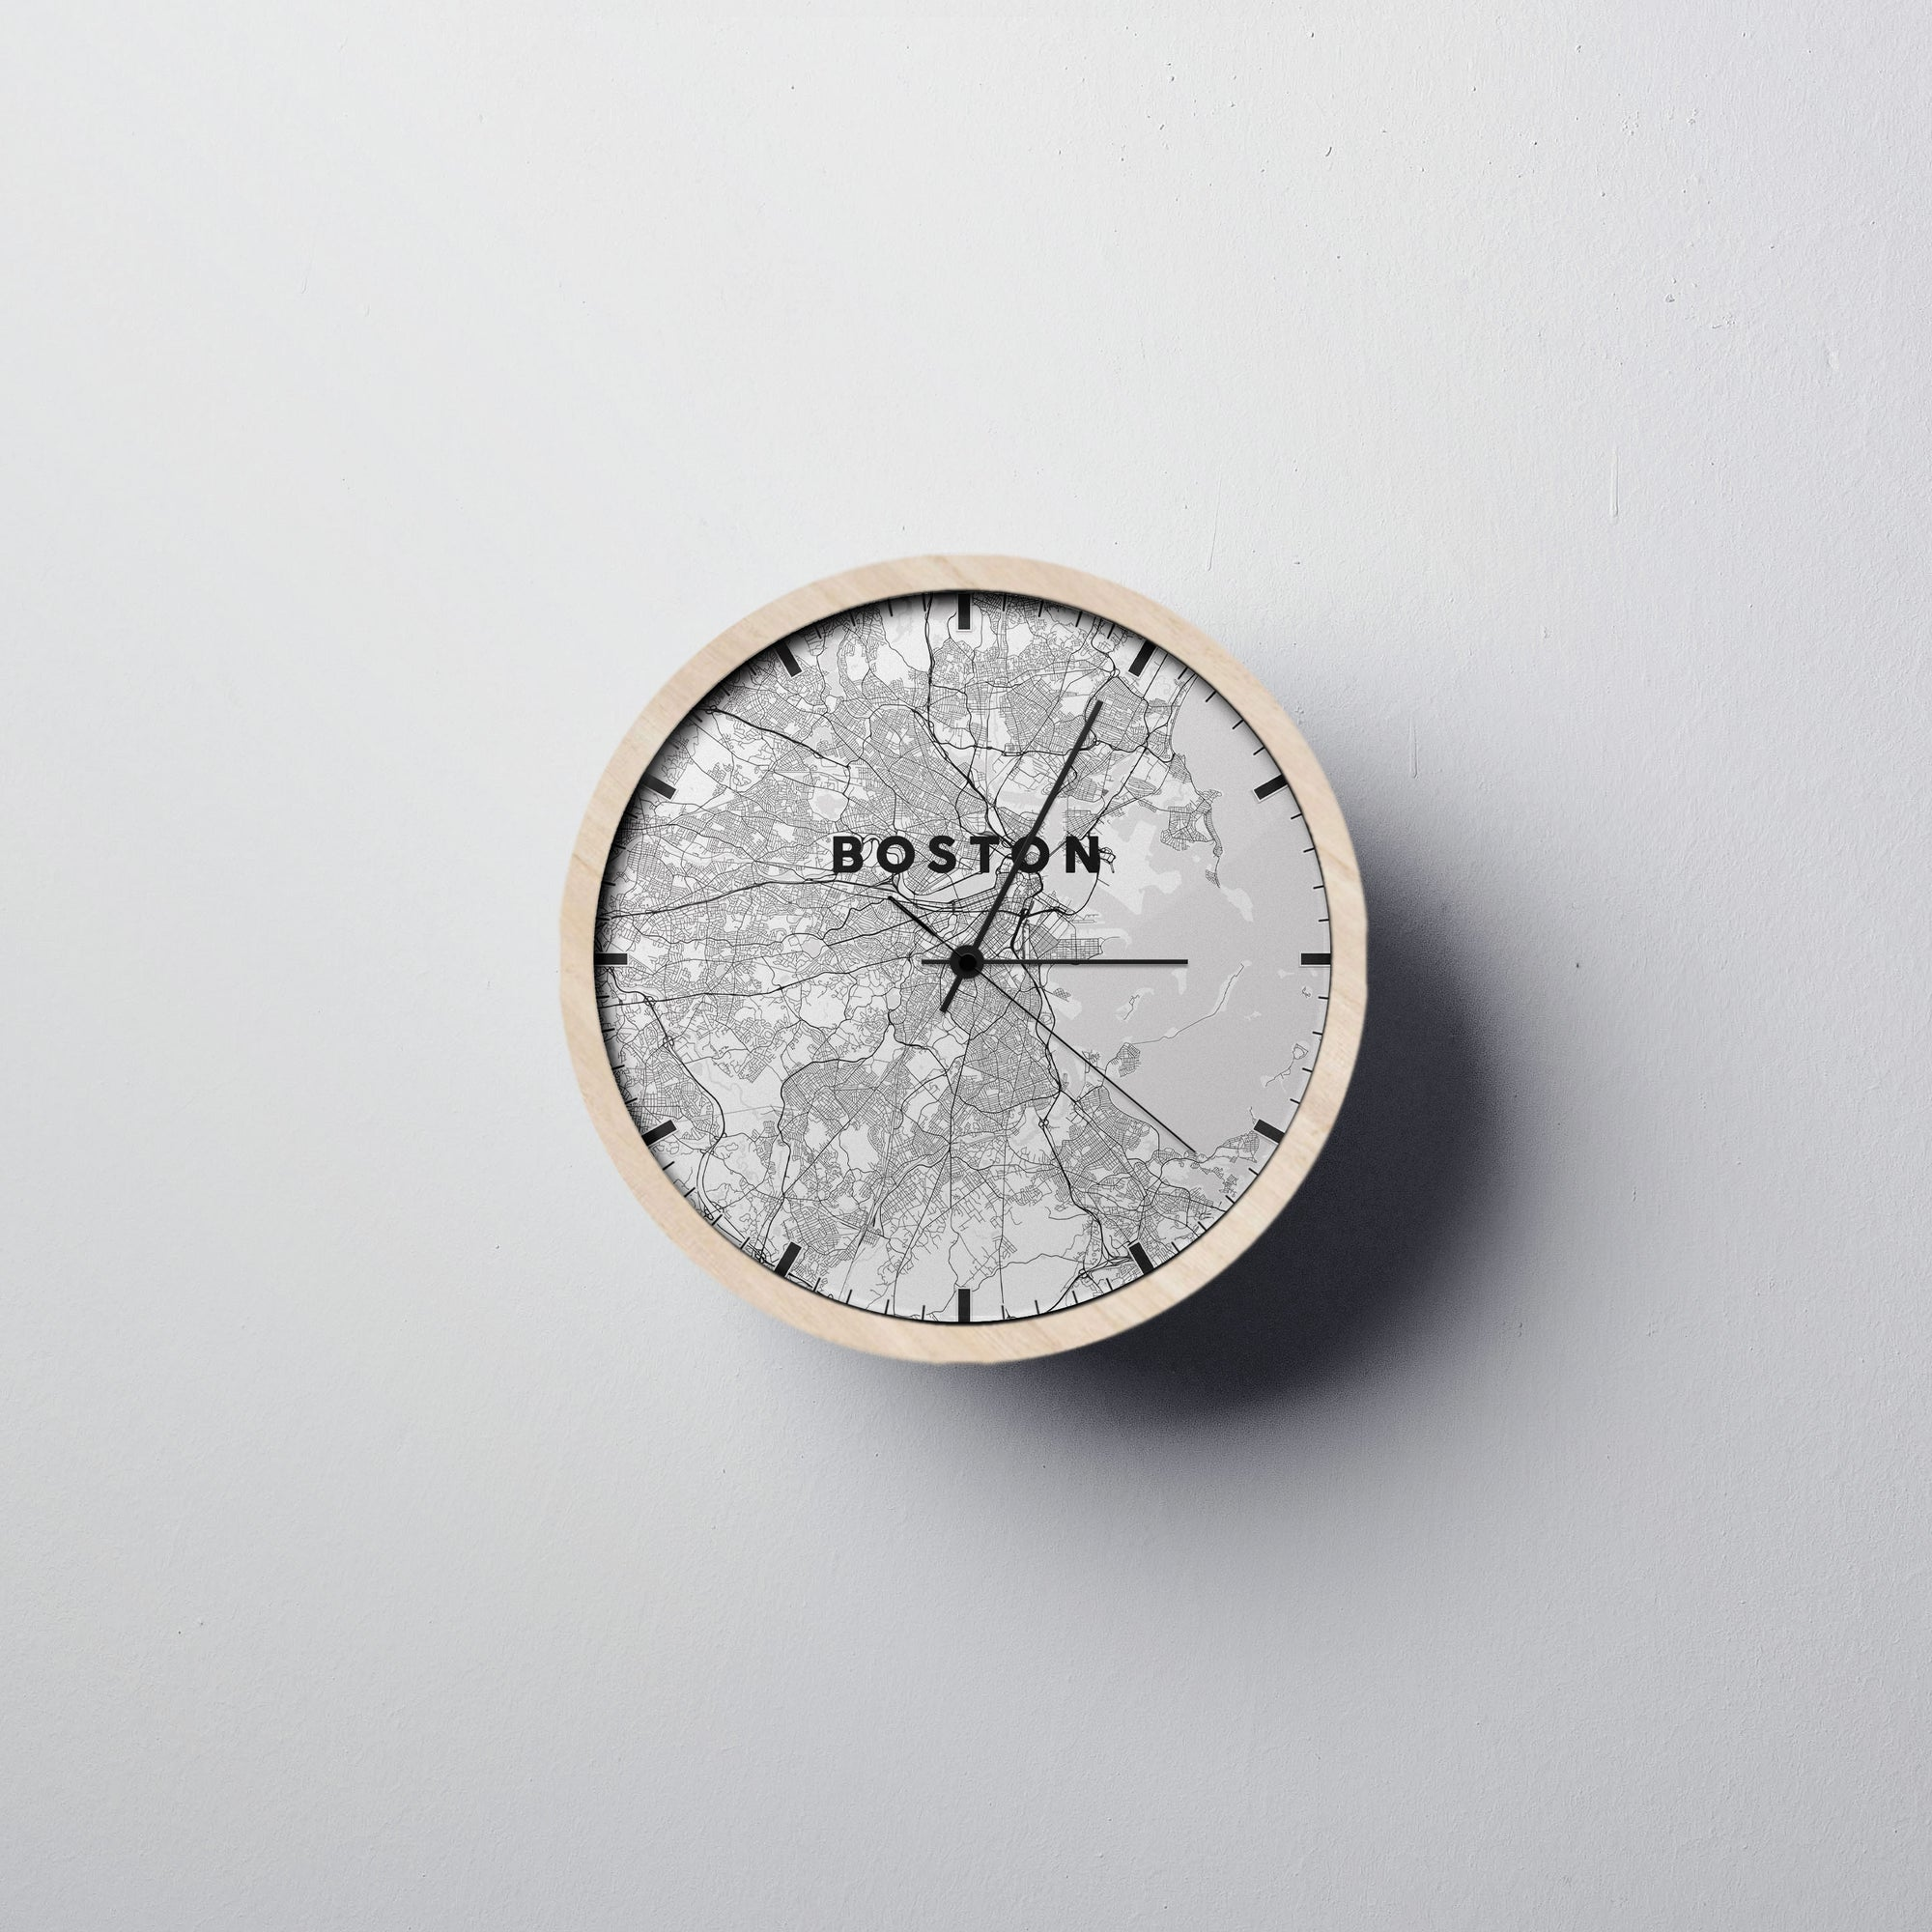 Boston Wall Clock - Point Two Design